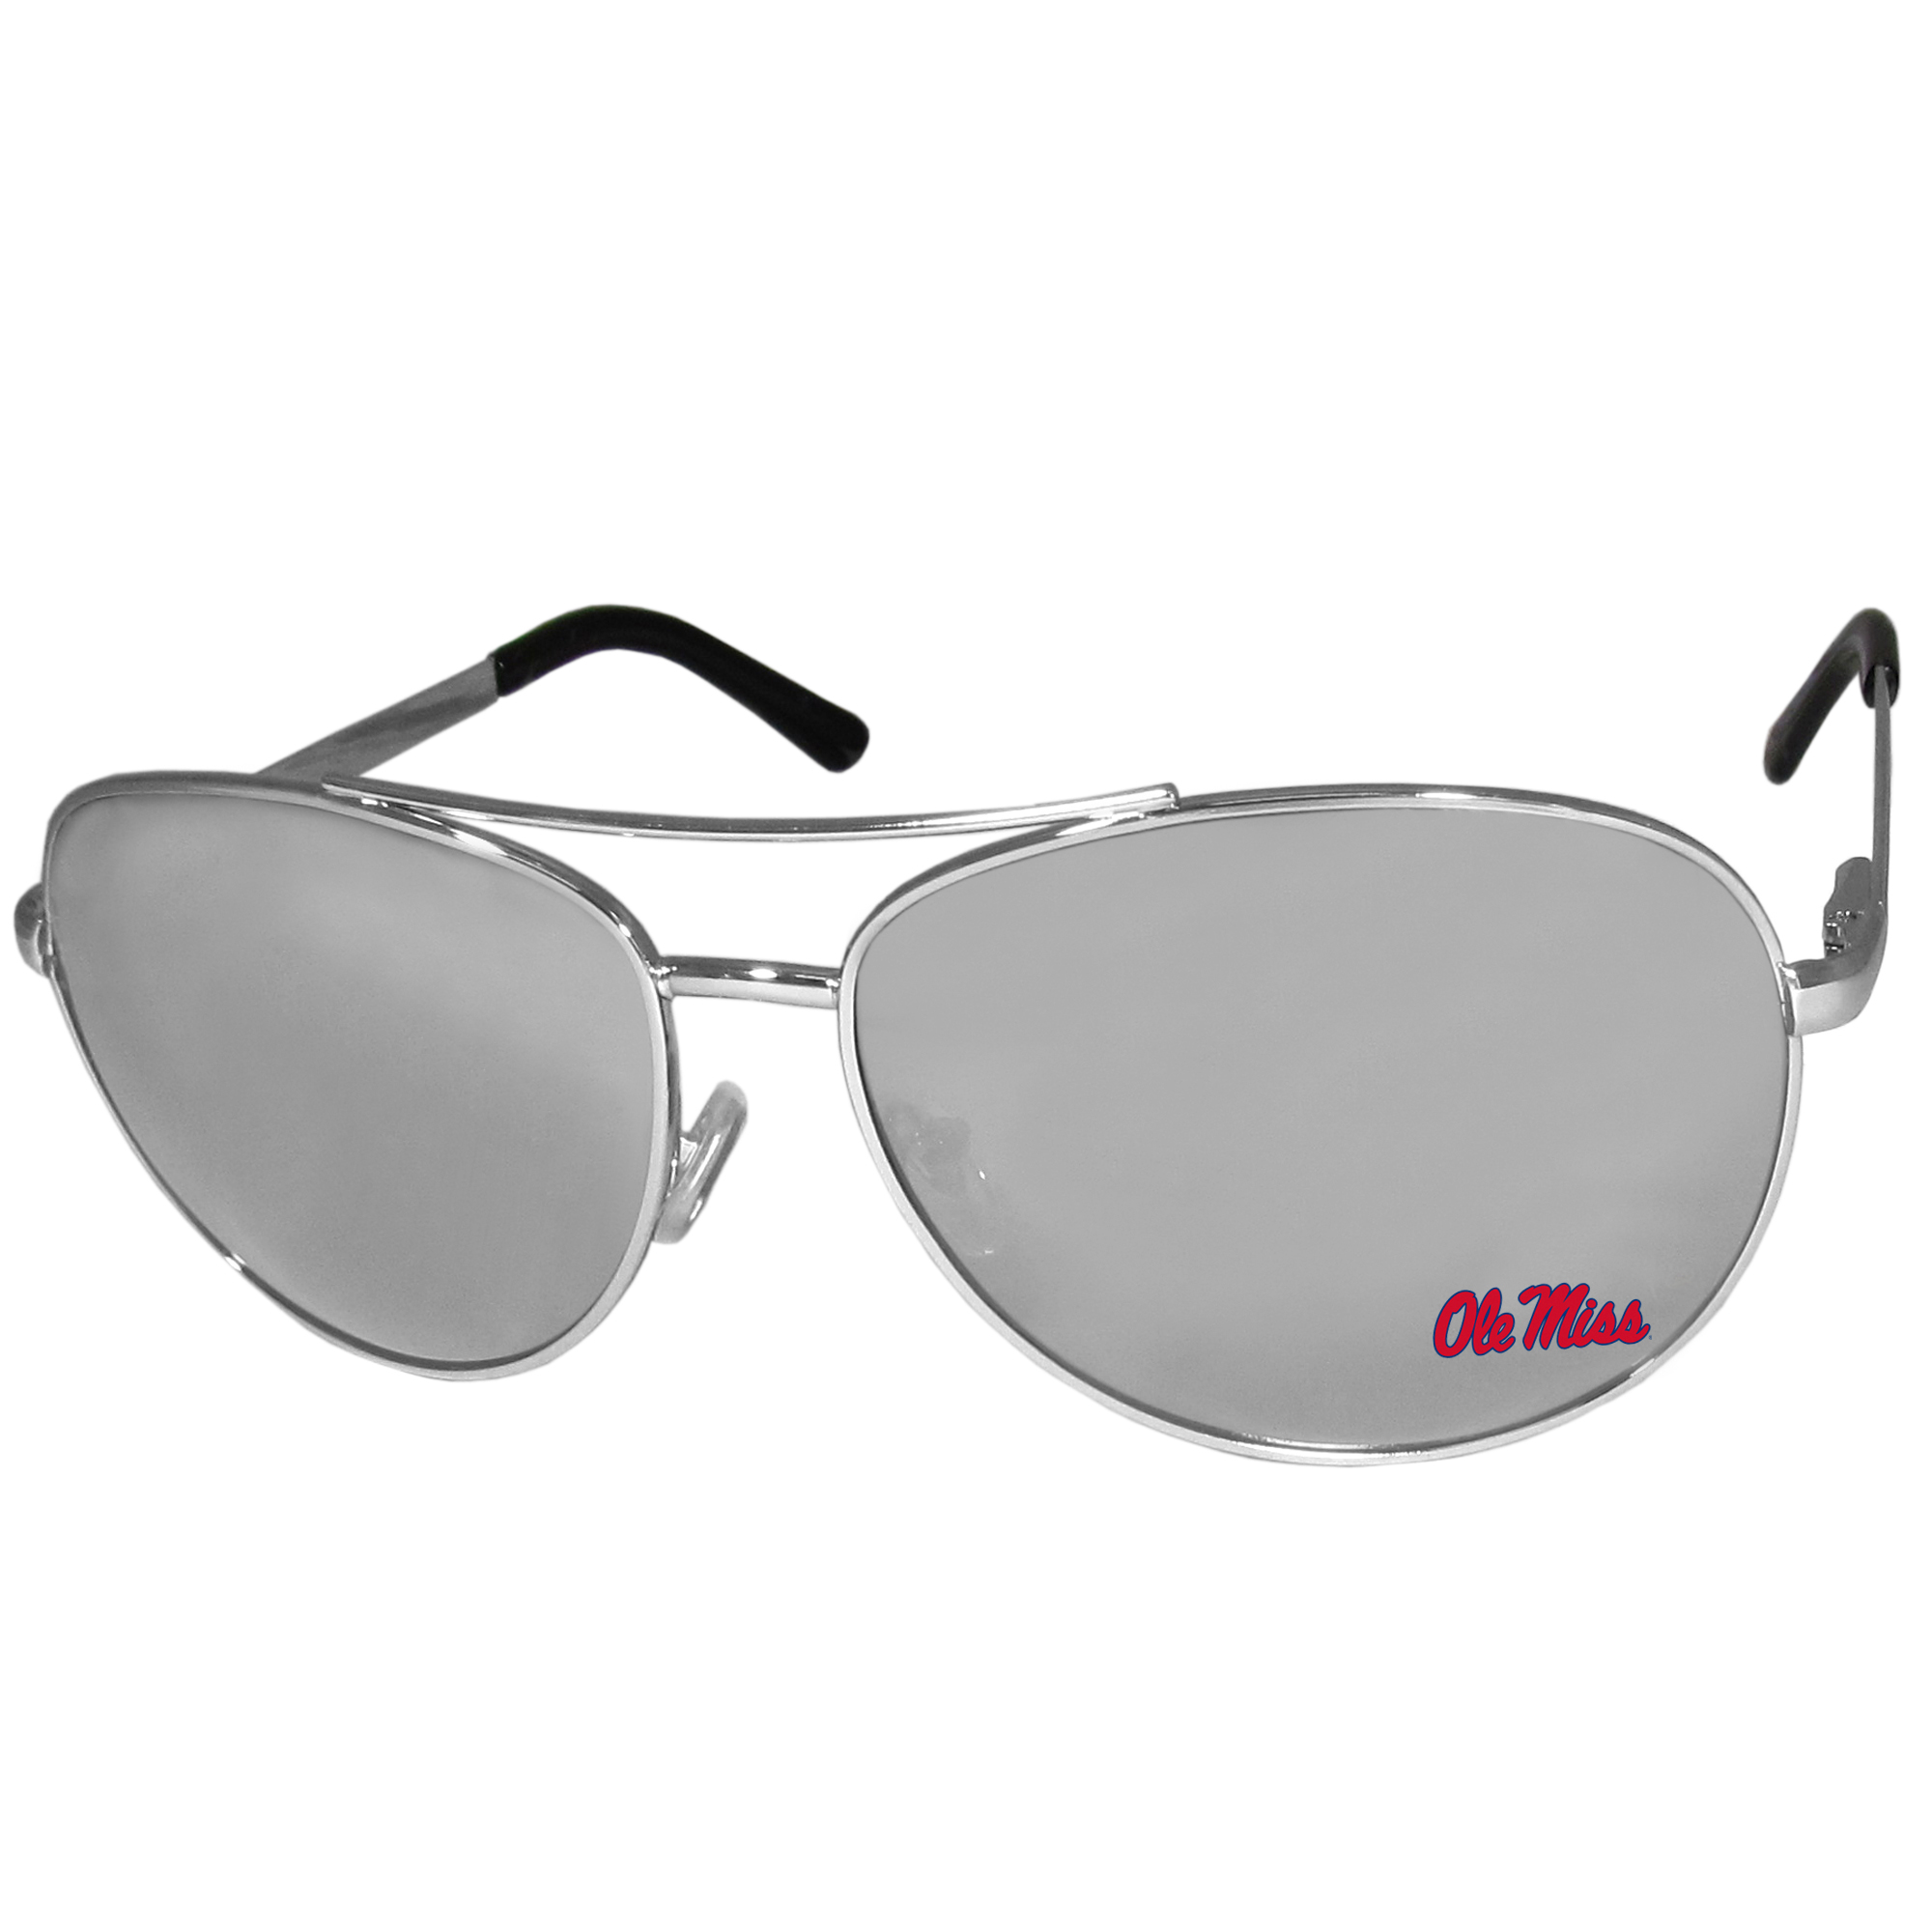 Mississippi Rebels Aviator Sunglasses - Our aviator sunglasses have the iconic aviator style with mirrored lenses and metal frames. The glasses feature a silk screened Mississippi Rebels logo in the corner of the lense. 100% UVA/UVB protection.